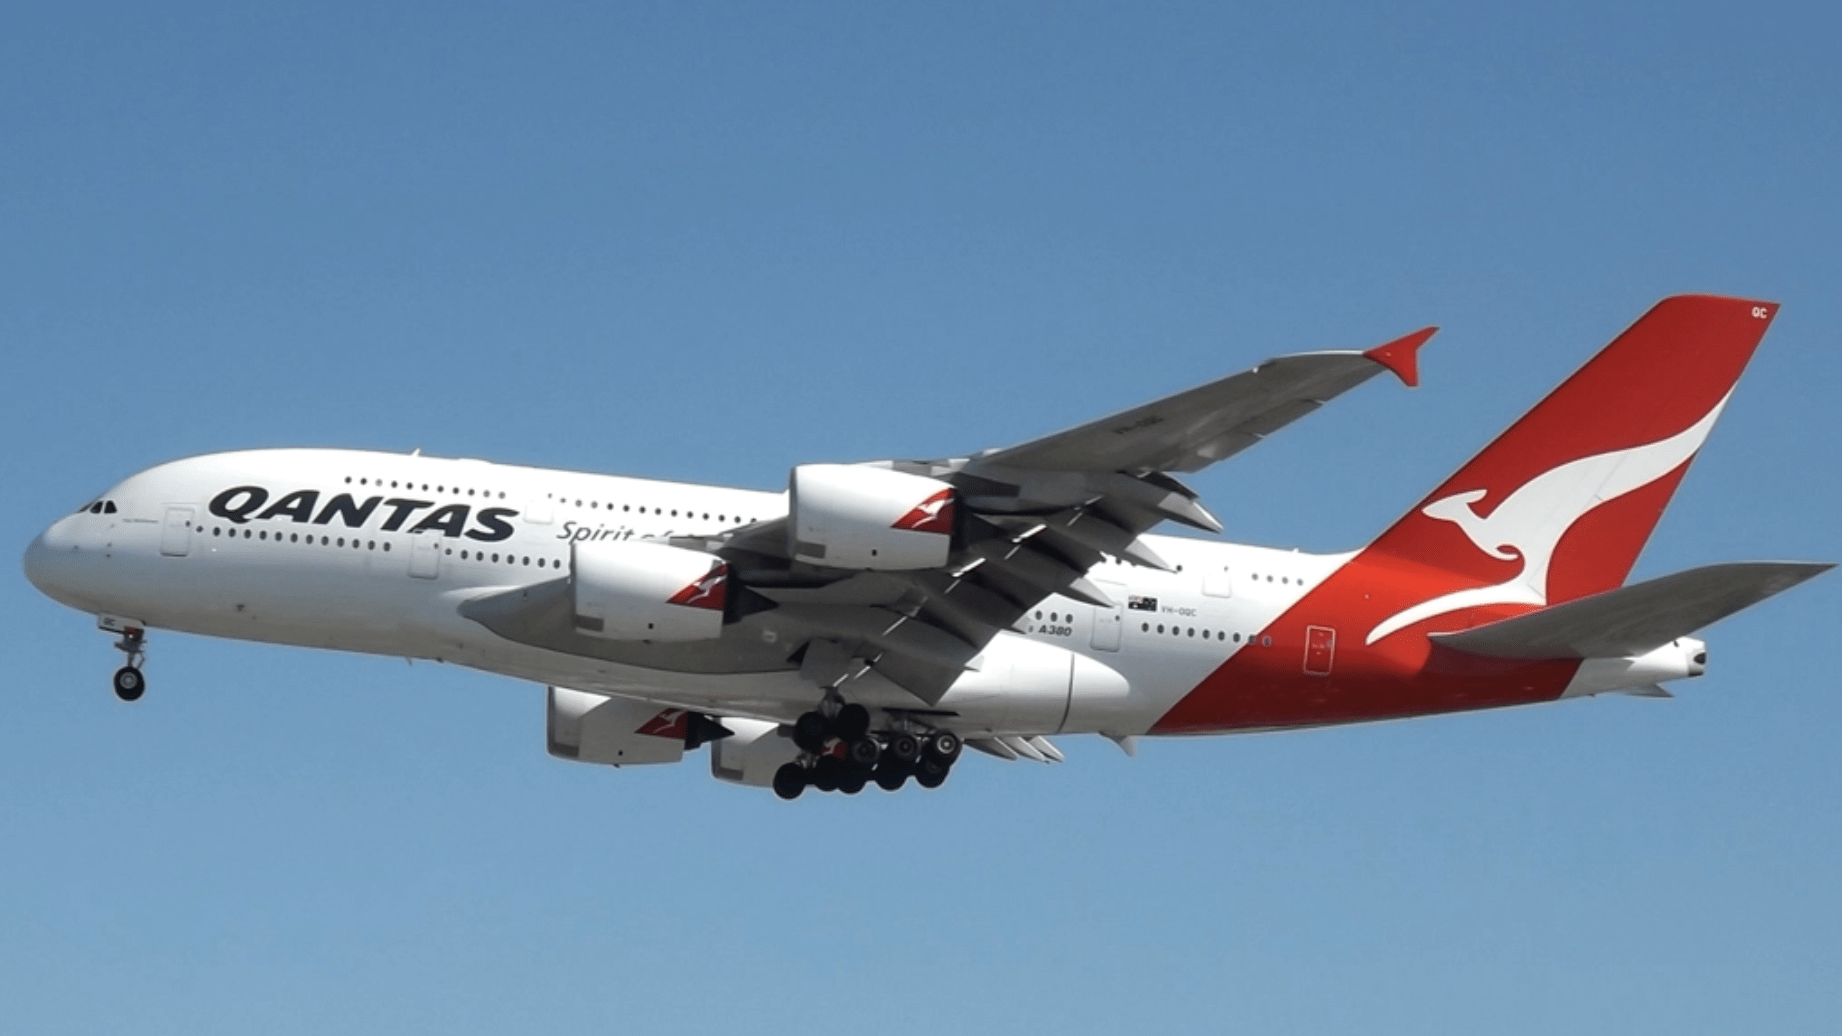 Our round-up of the best-value redemptions for 60,000 Qantas Points